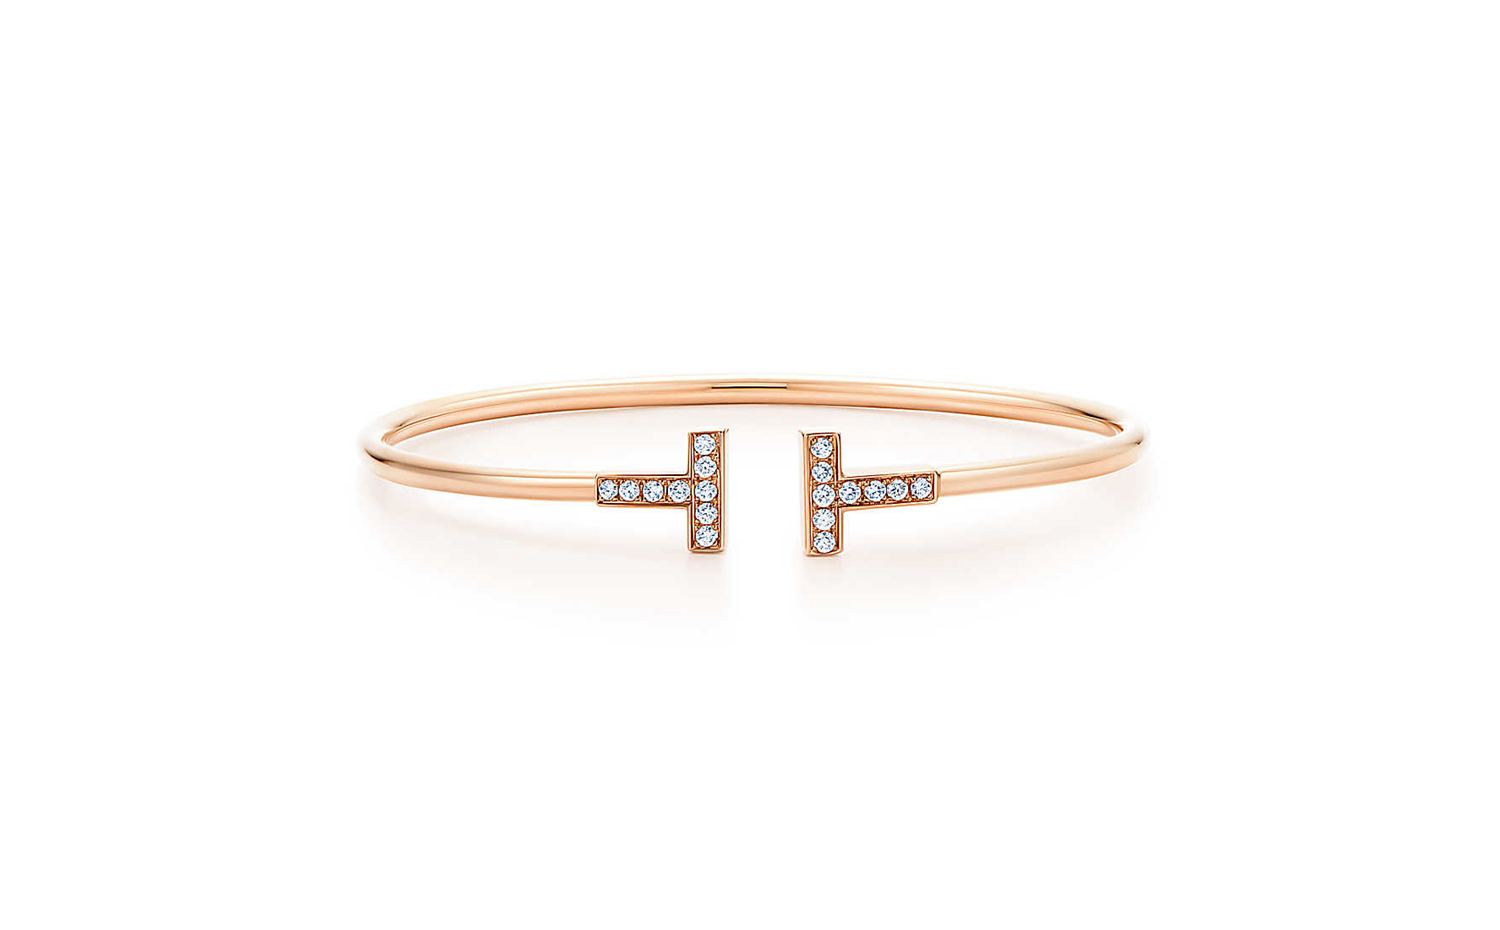 Tiffany T Wire Bracelet in Rose Gold